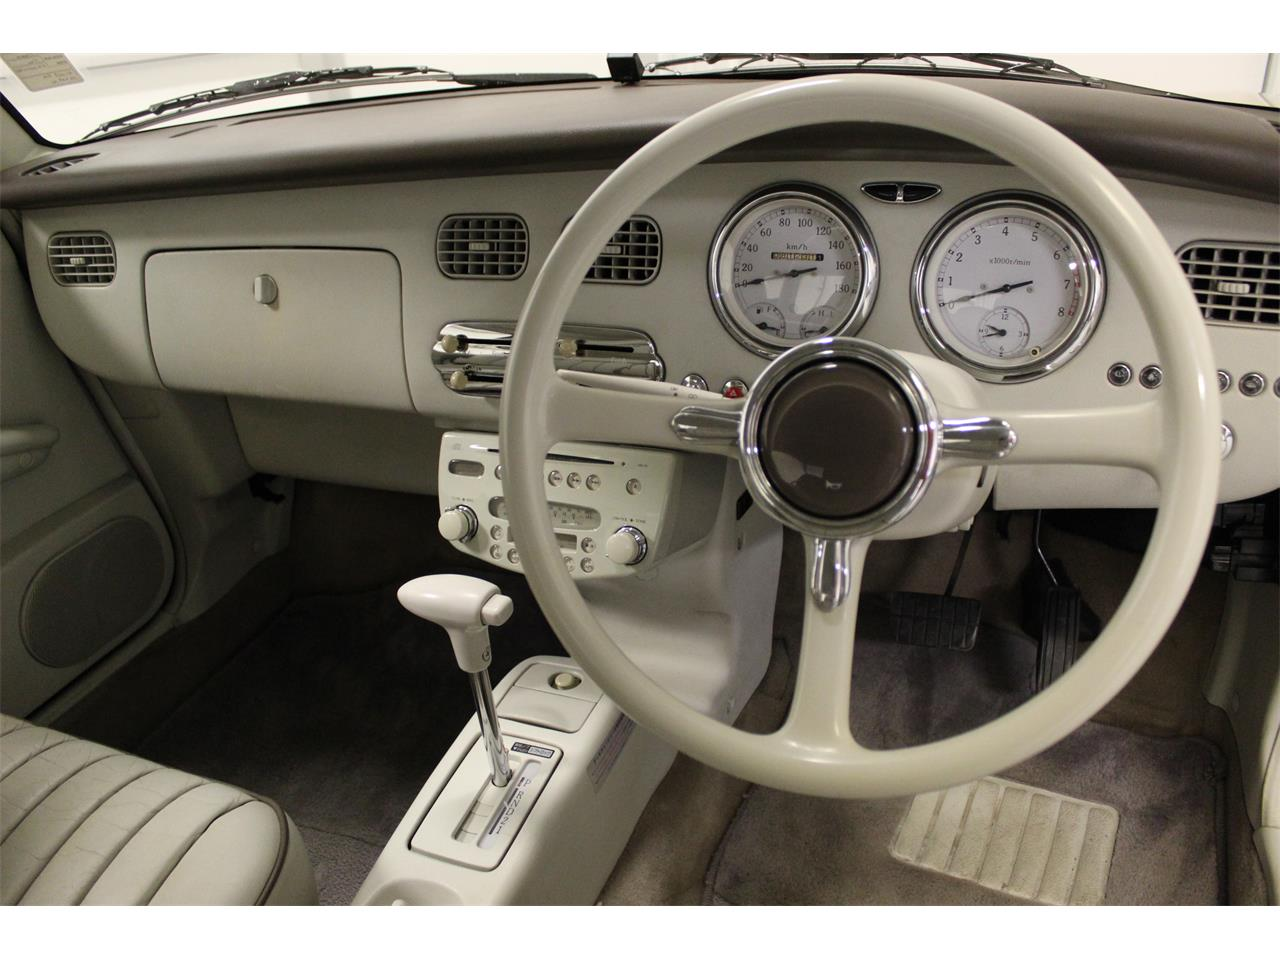 1991 Nissan Figaro for sale in Christiansburg, VA – photo 17